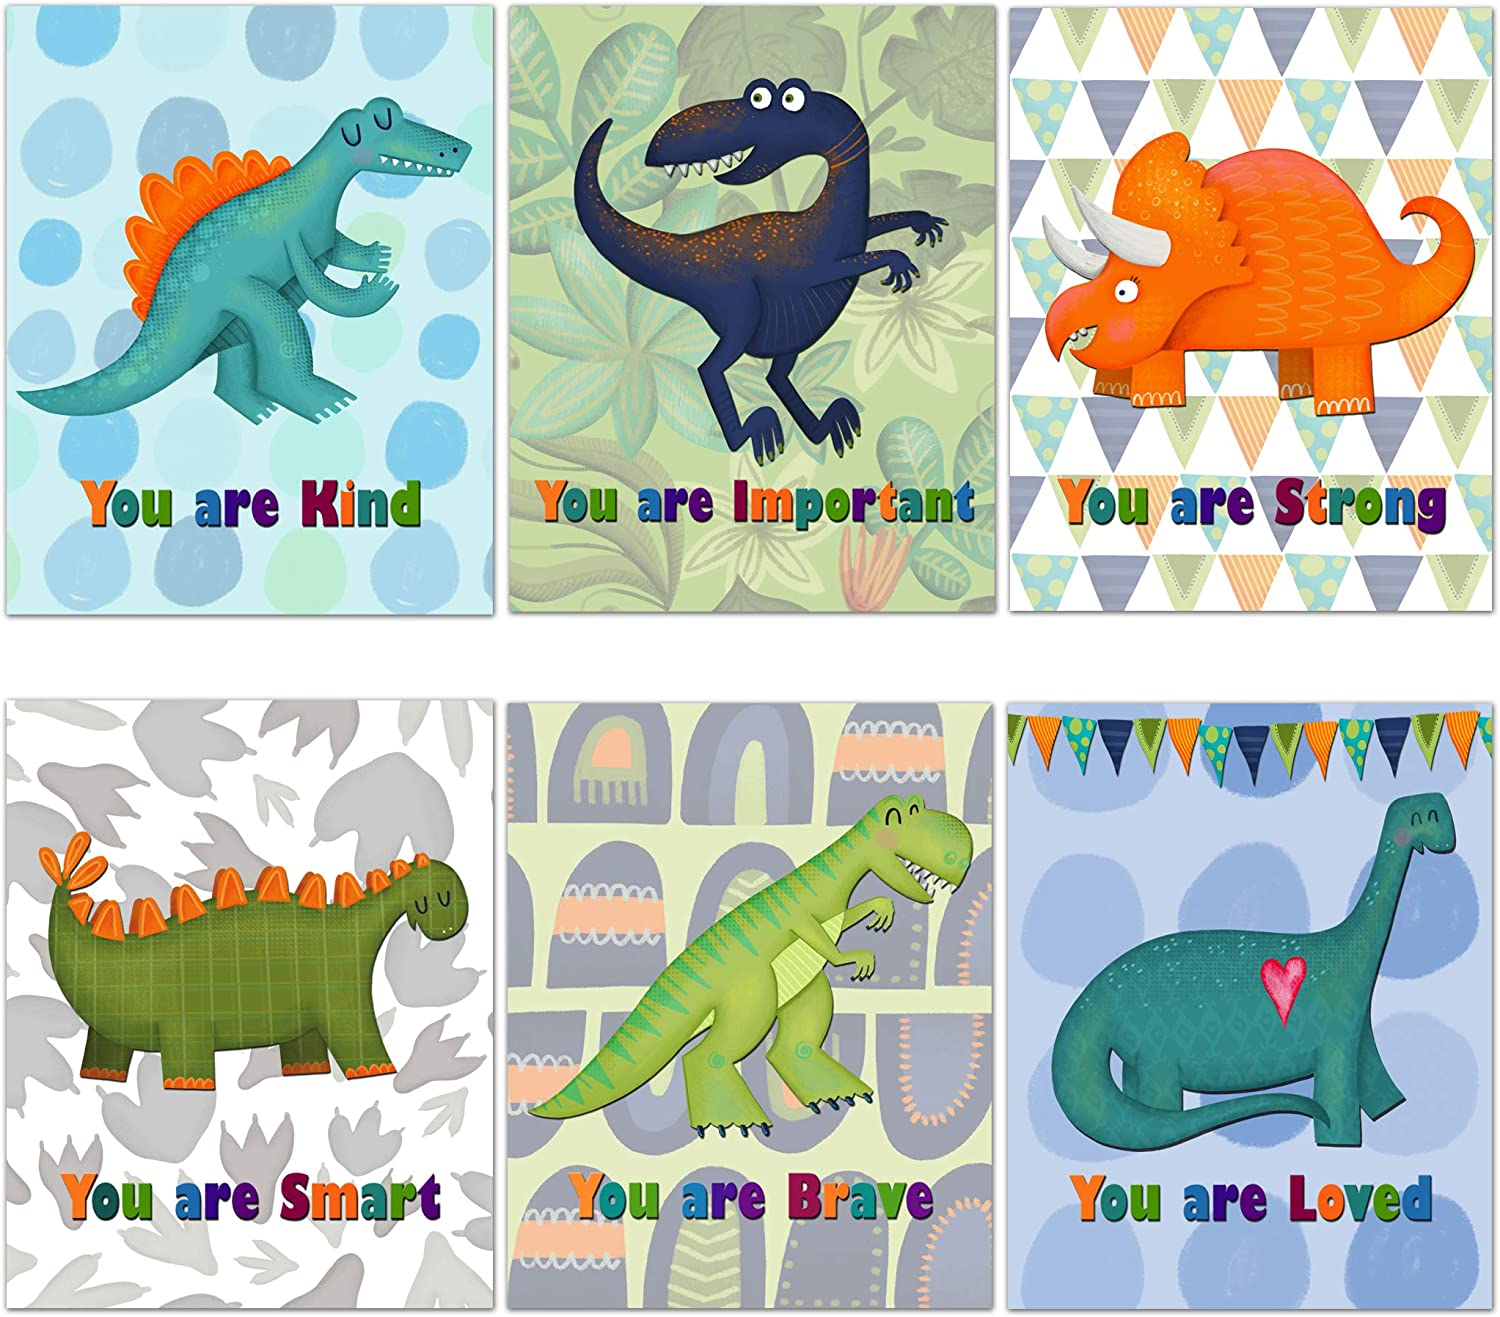 Dinosaur Motivational Wall Art Wall Decor Posters For Boys Room (6) 8x10 Unframed Photo Prints For Kids Made In USA Dinosaur Room Decor For Boys Nursery Wall Decor Nursery Decor For A Boy